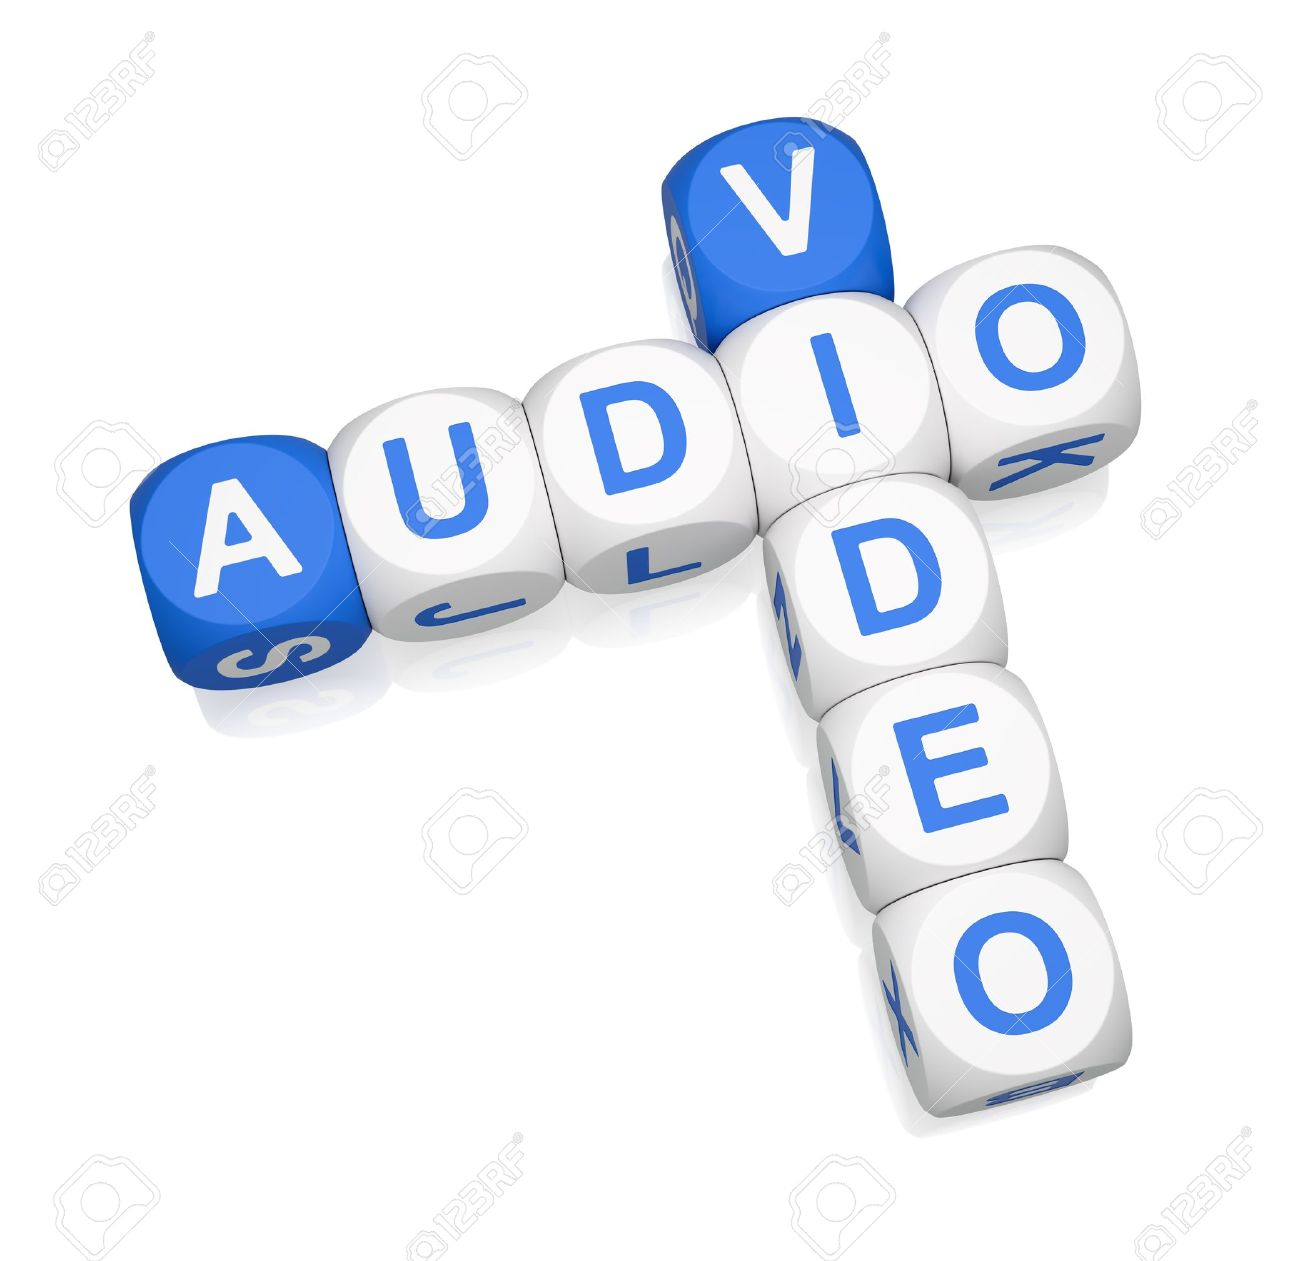 Microphone clipart audio visual #10